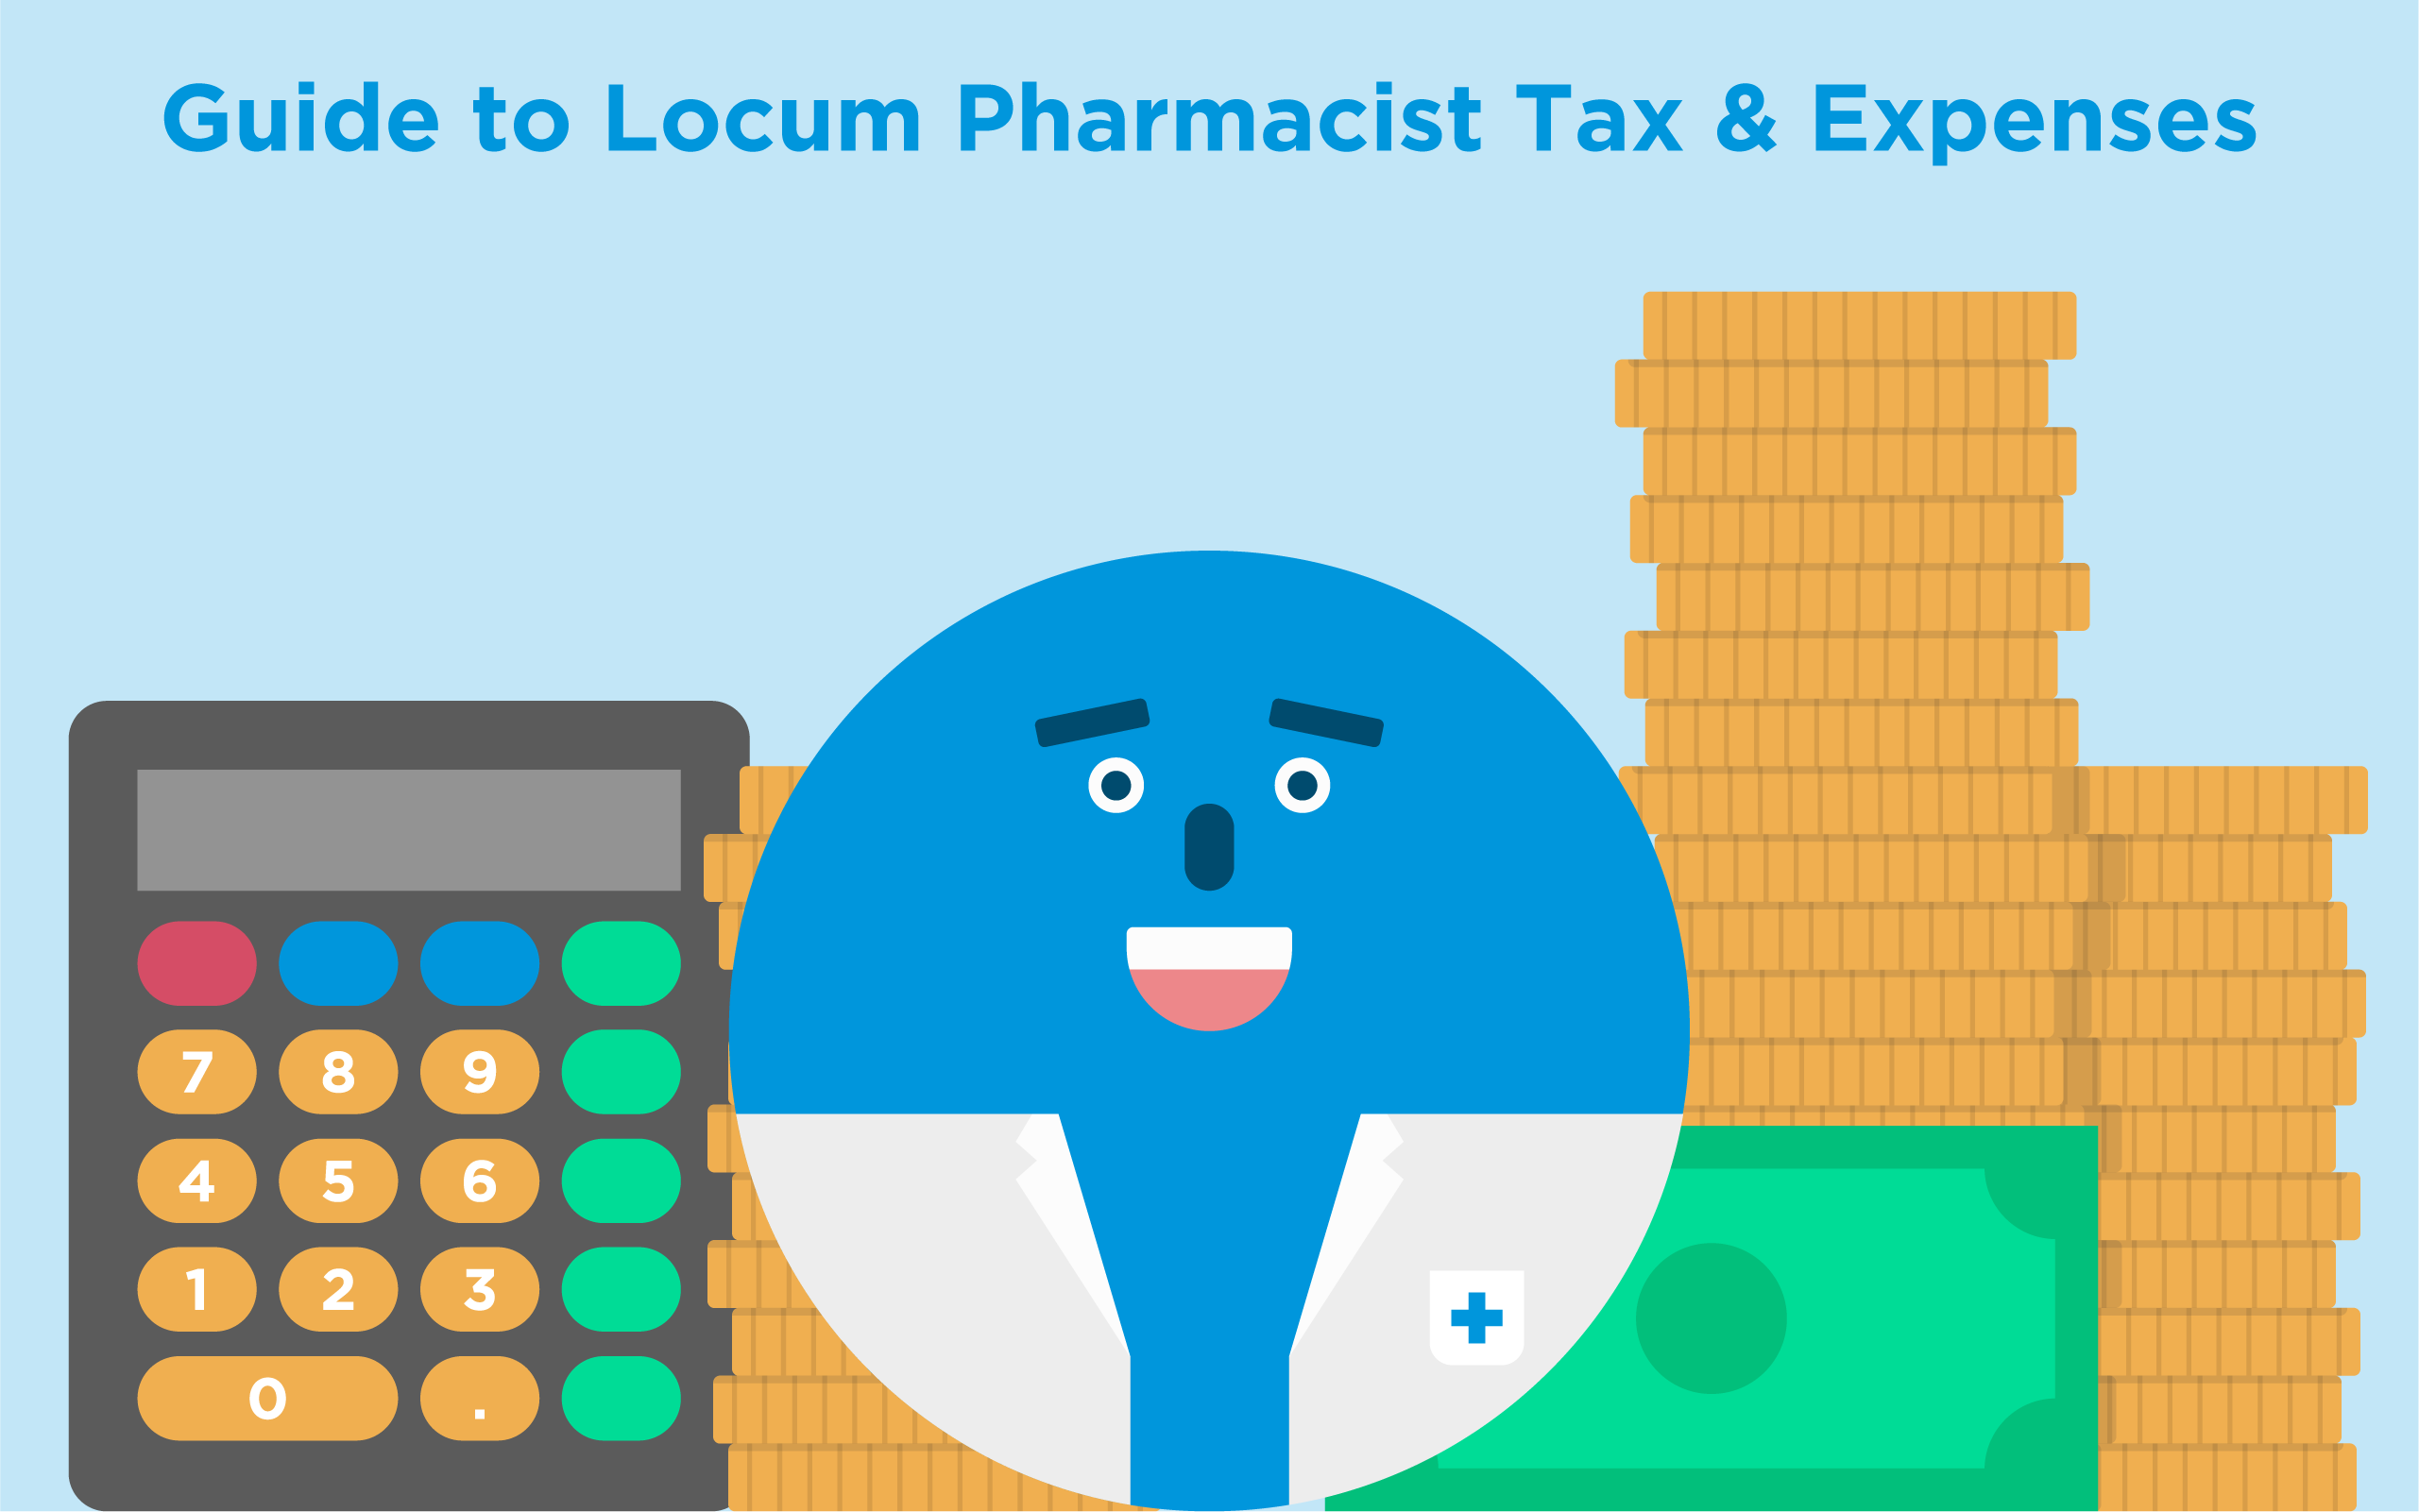 guide-to-locum-pharmacist-tax-and-expenses